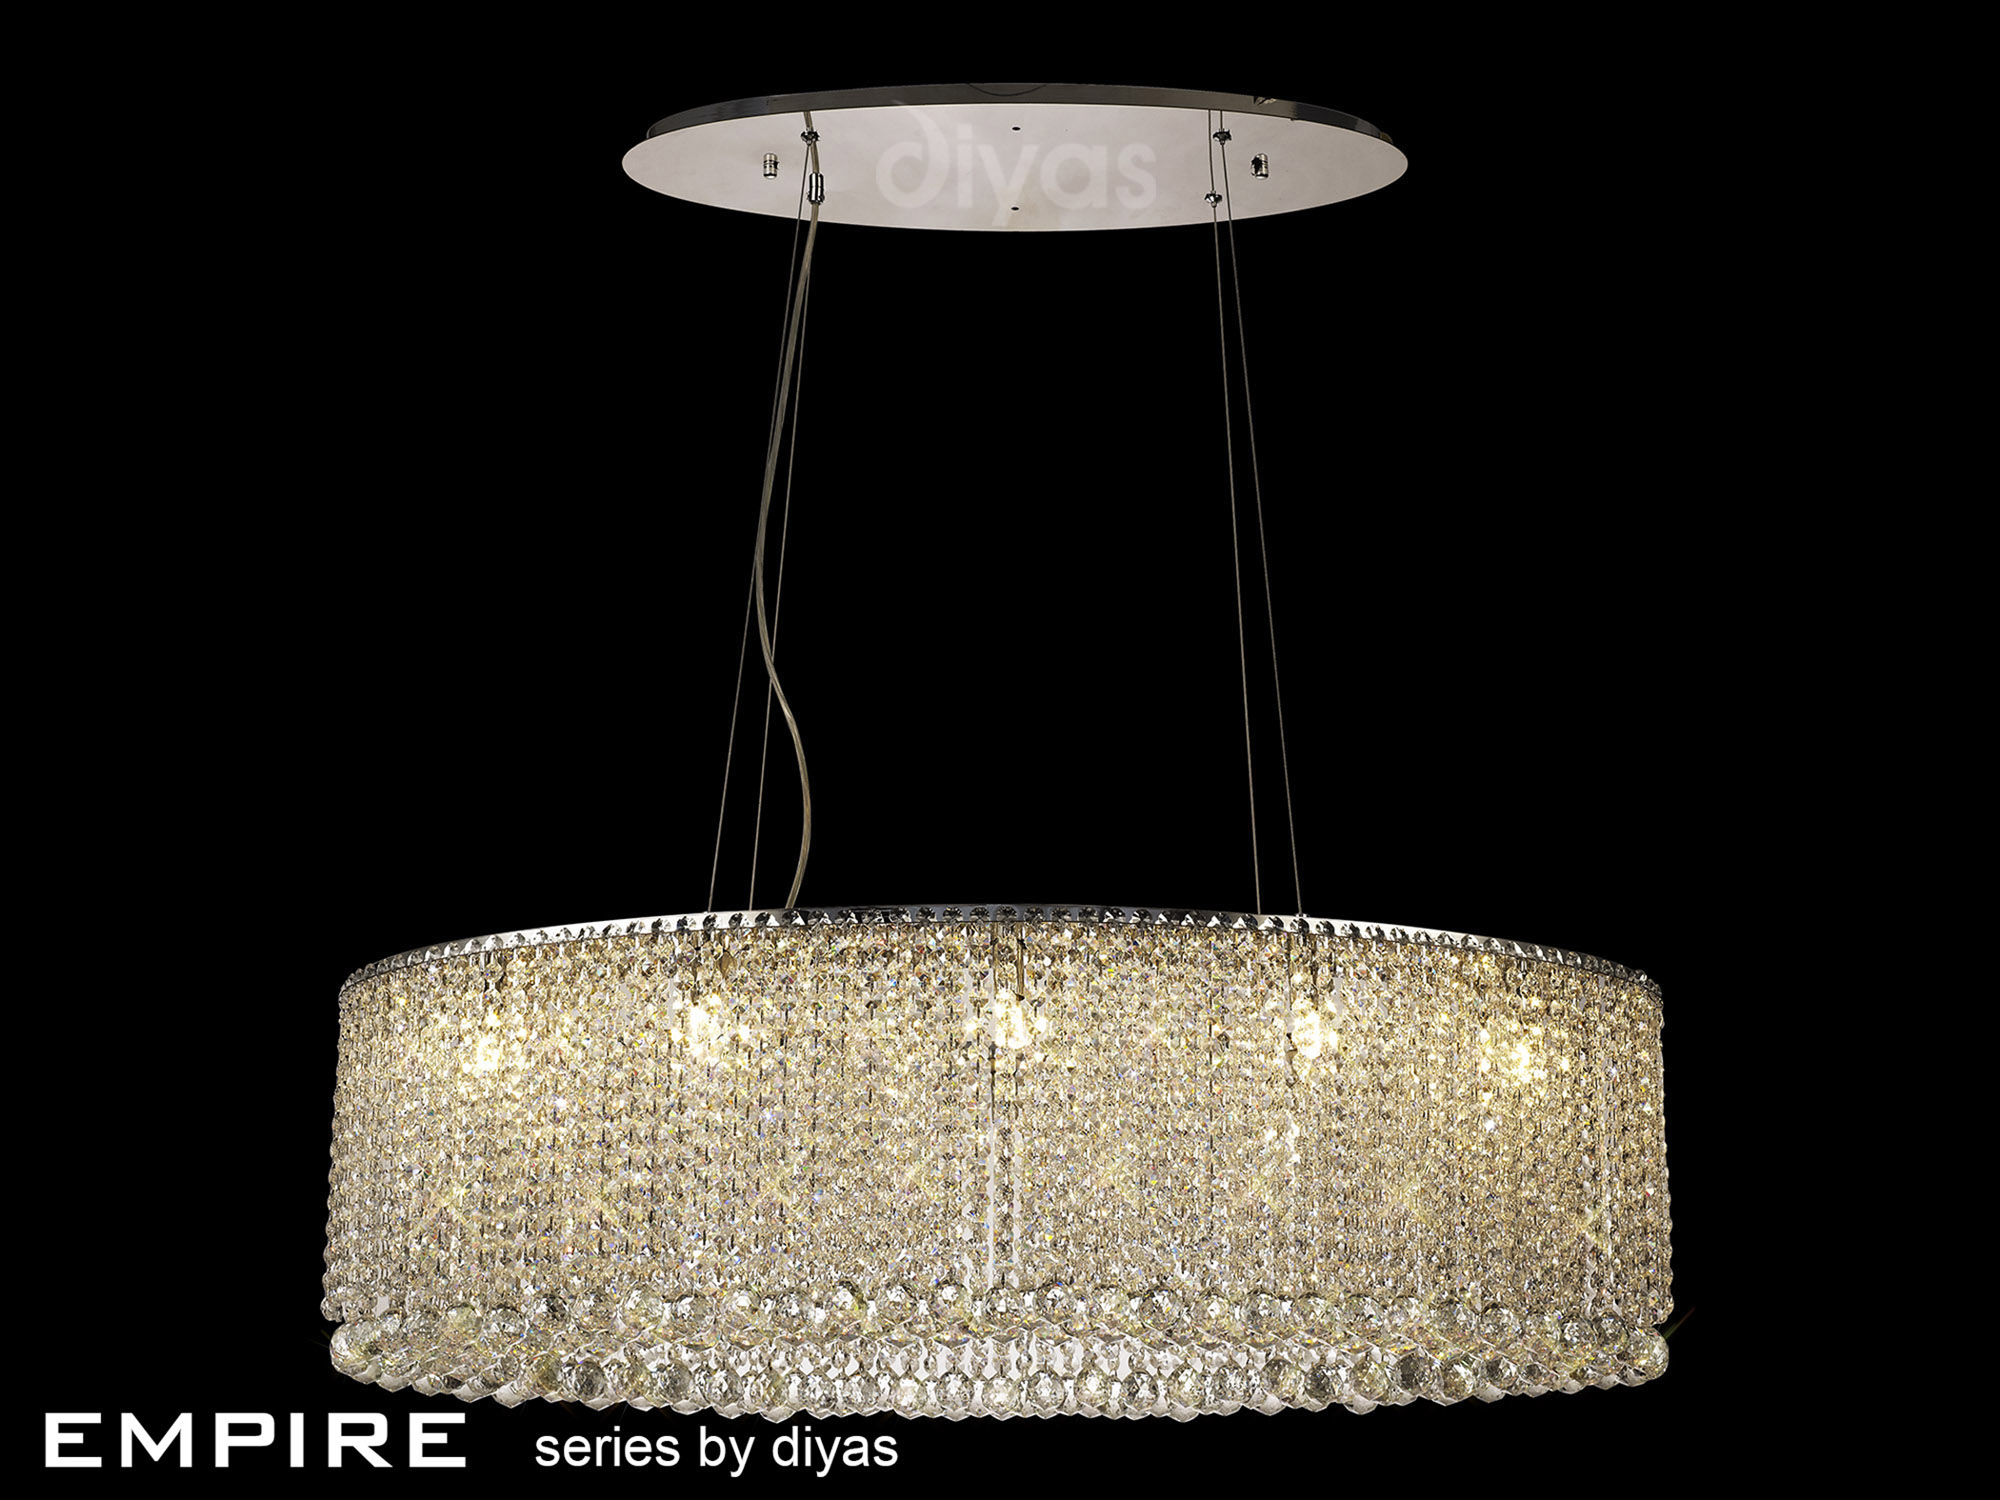 6ea2b7f27a Empire Crystal Ceiling Lights Diyas Contemporary Crystal Ceiling Lights ...